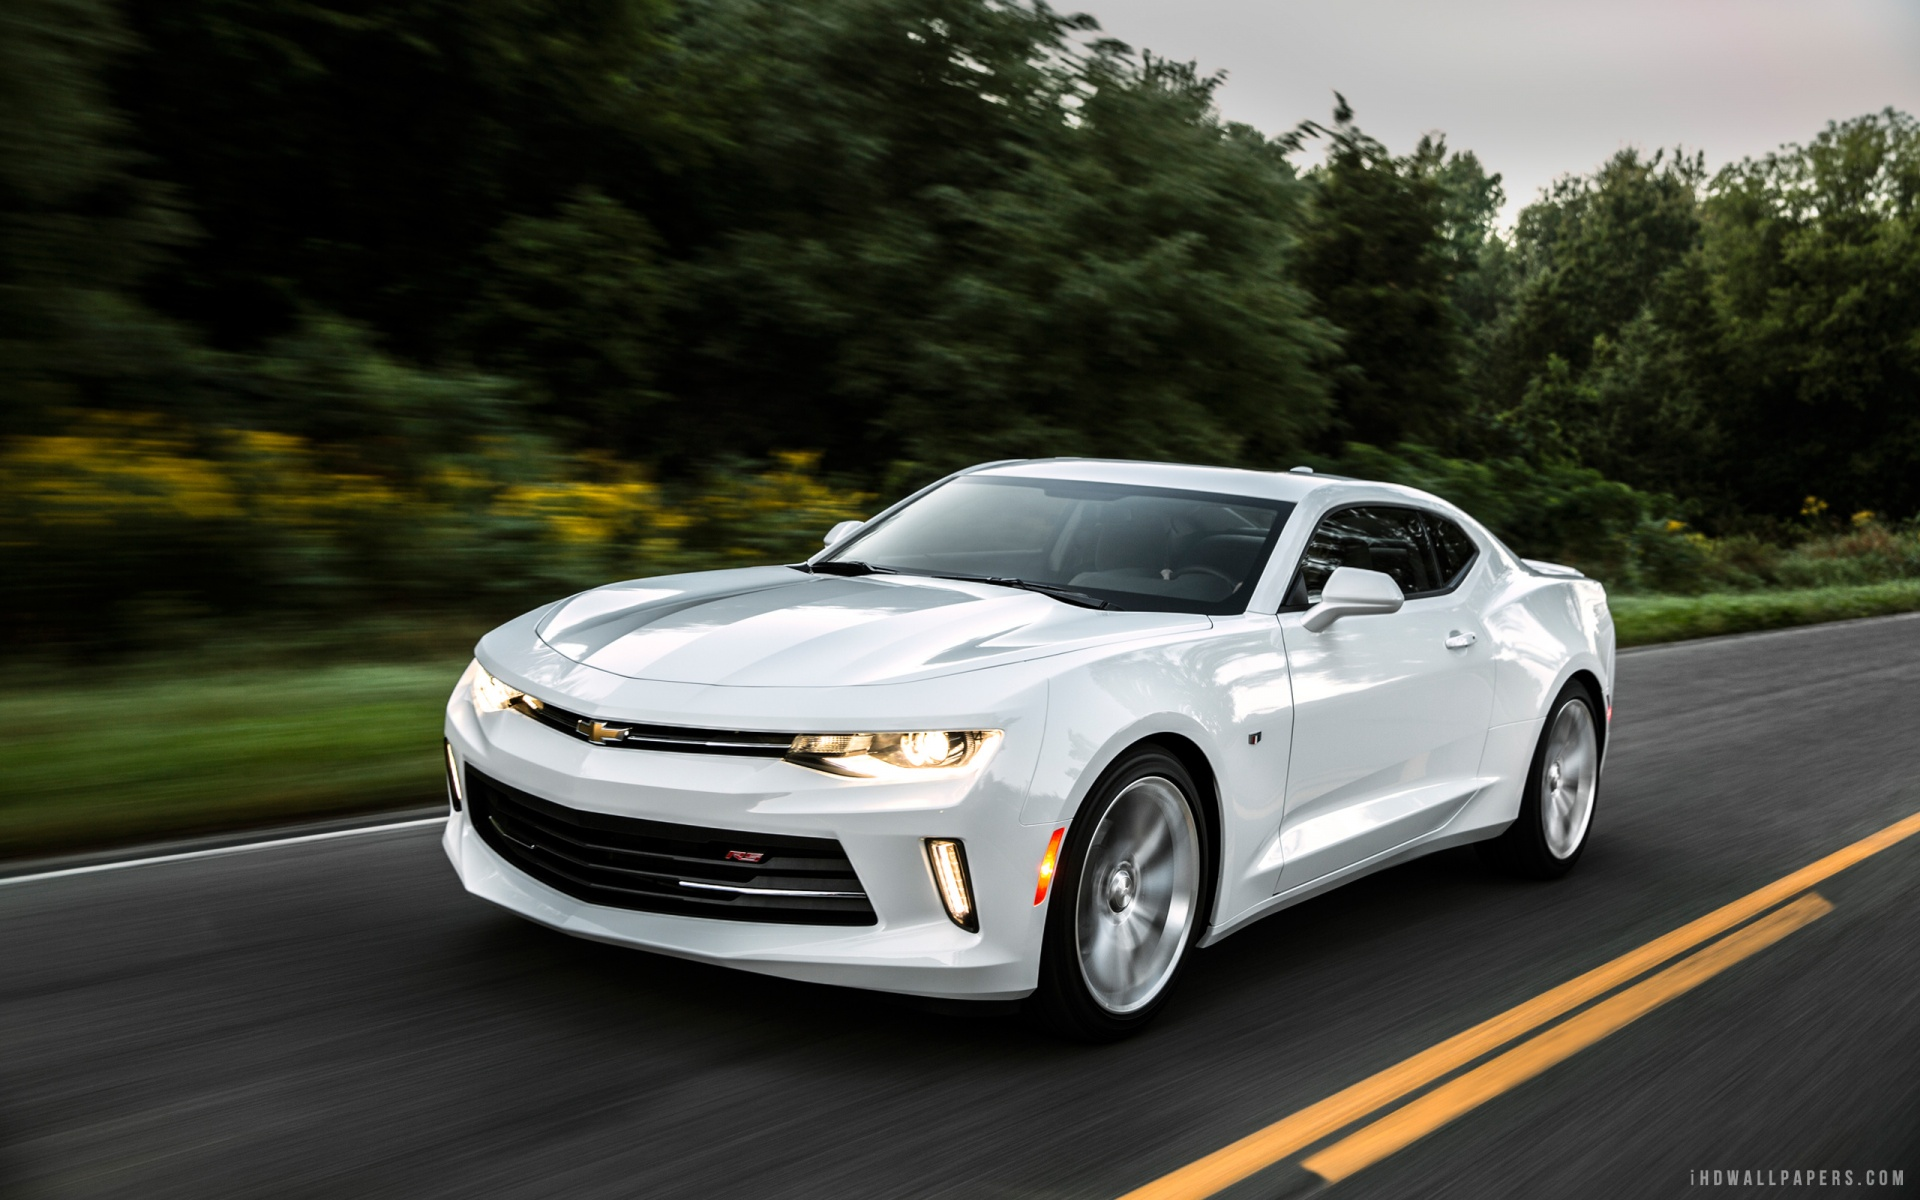 2016 Chevy Camaro V6 HD Wallpaper   iHD Wallpapers 1920x1200